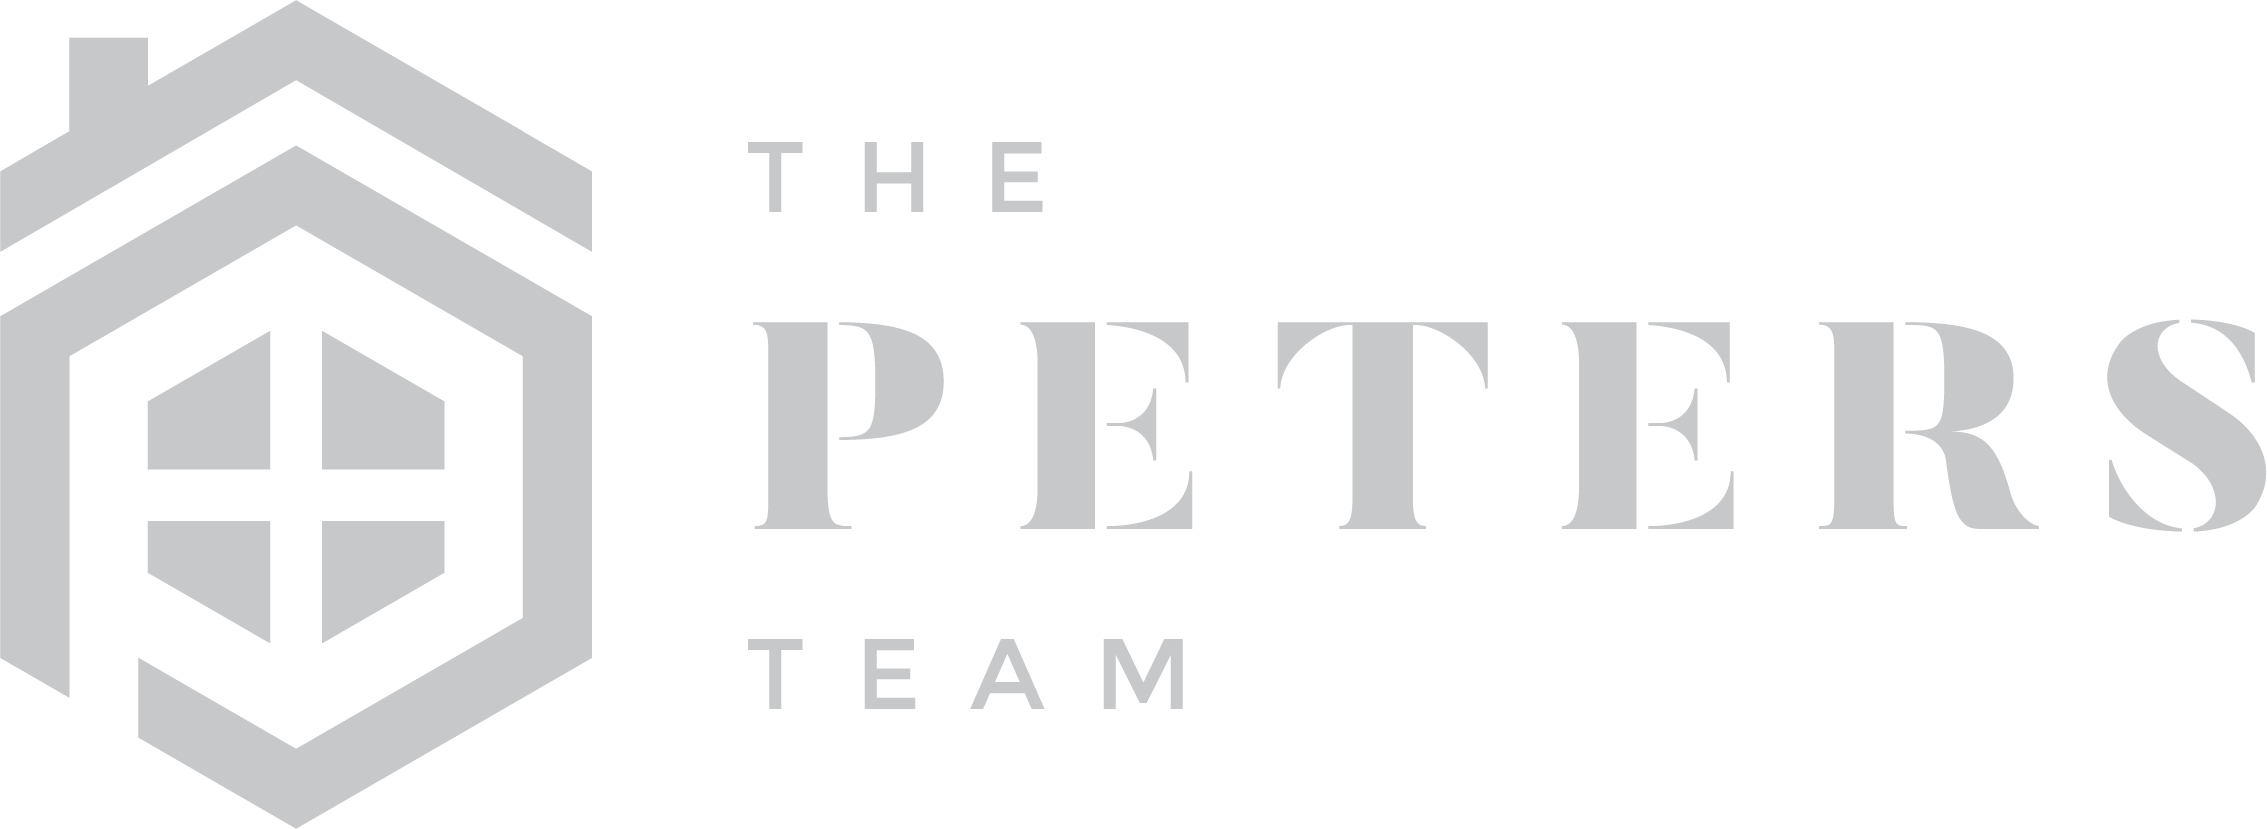 The Peters Team